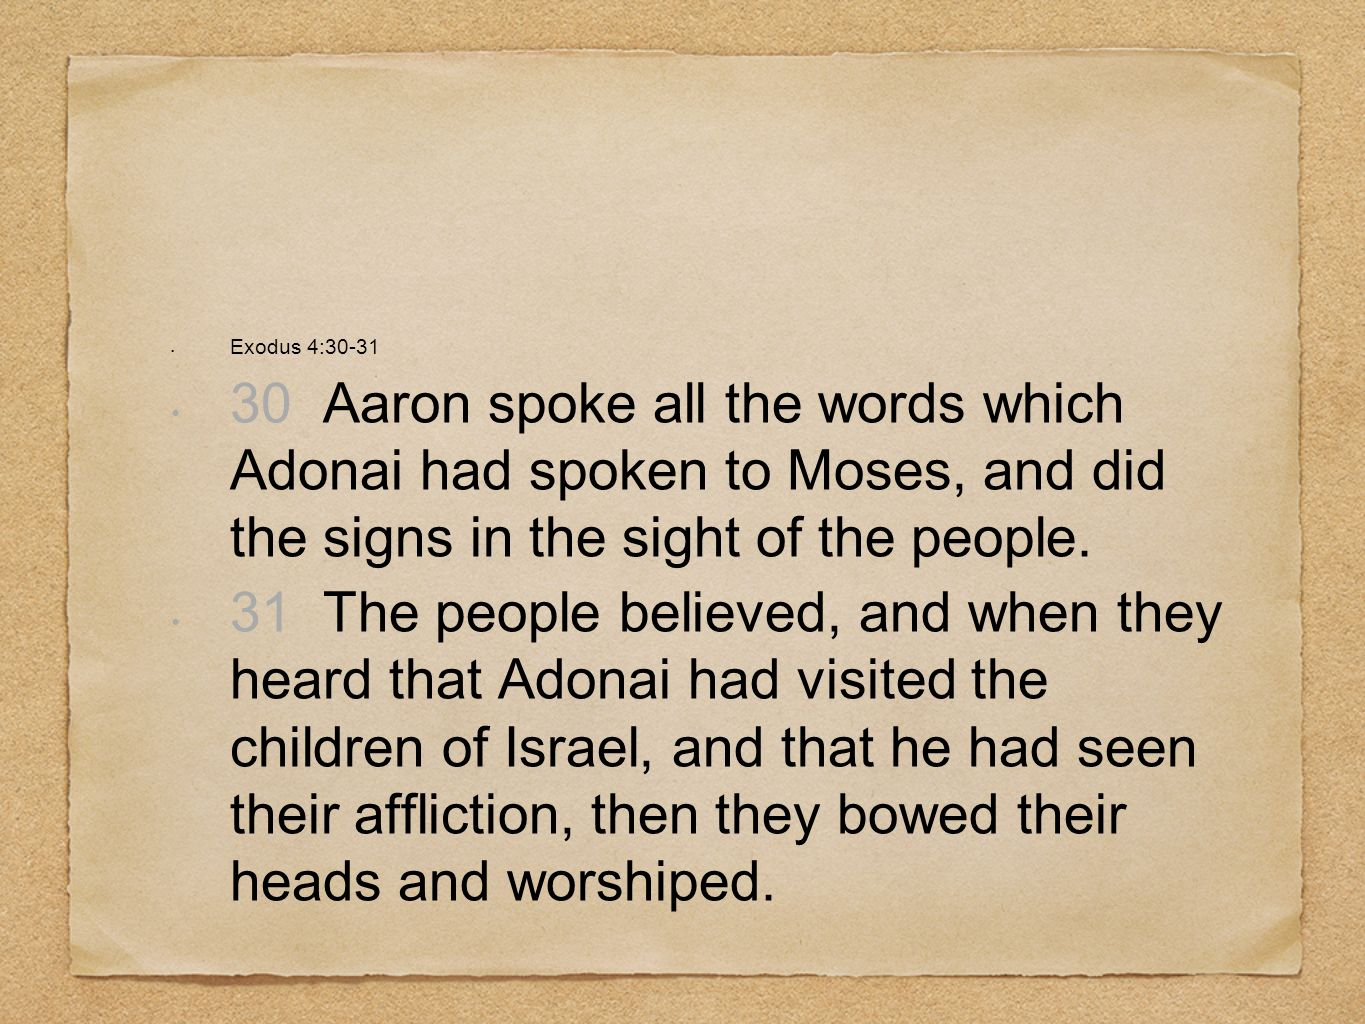 Exodus 4:30-3130 Aaron spoke all the words which Adonai had spoken to Moses, and did the signs in the sight of the people.